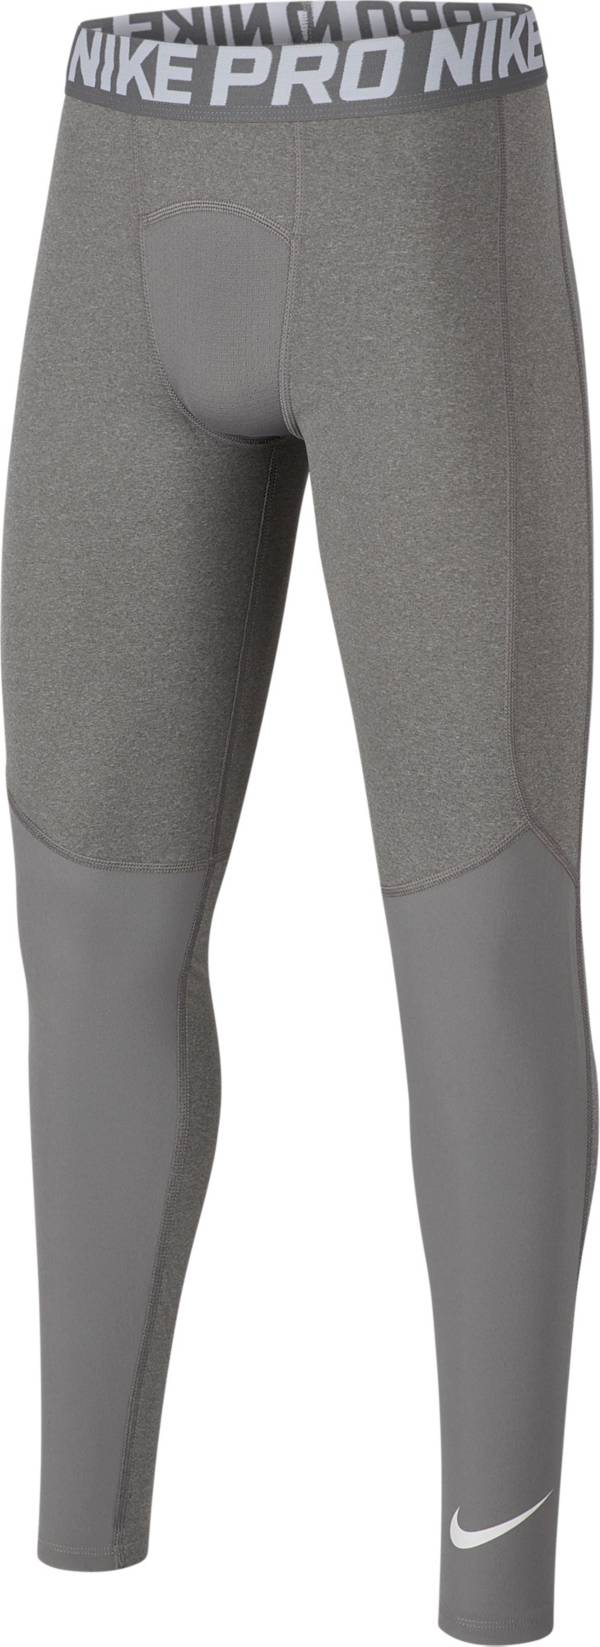 Nike Boys' Dri-FIT Pro Tights product image